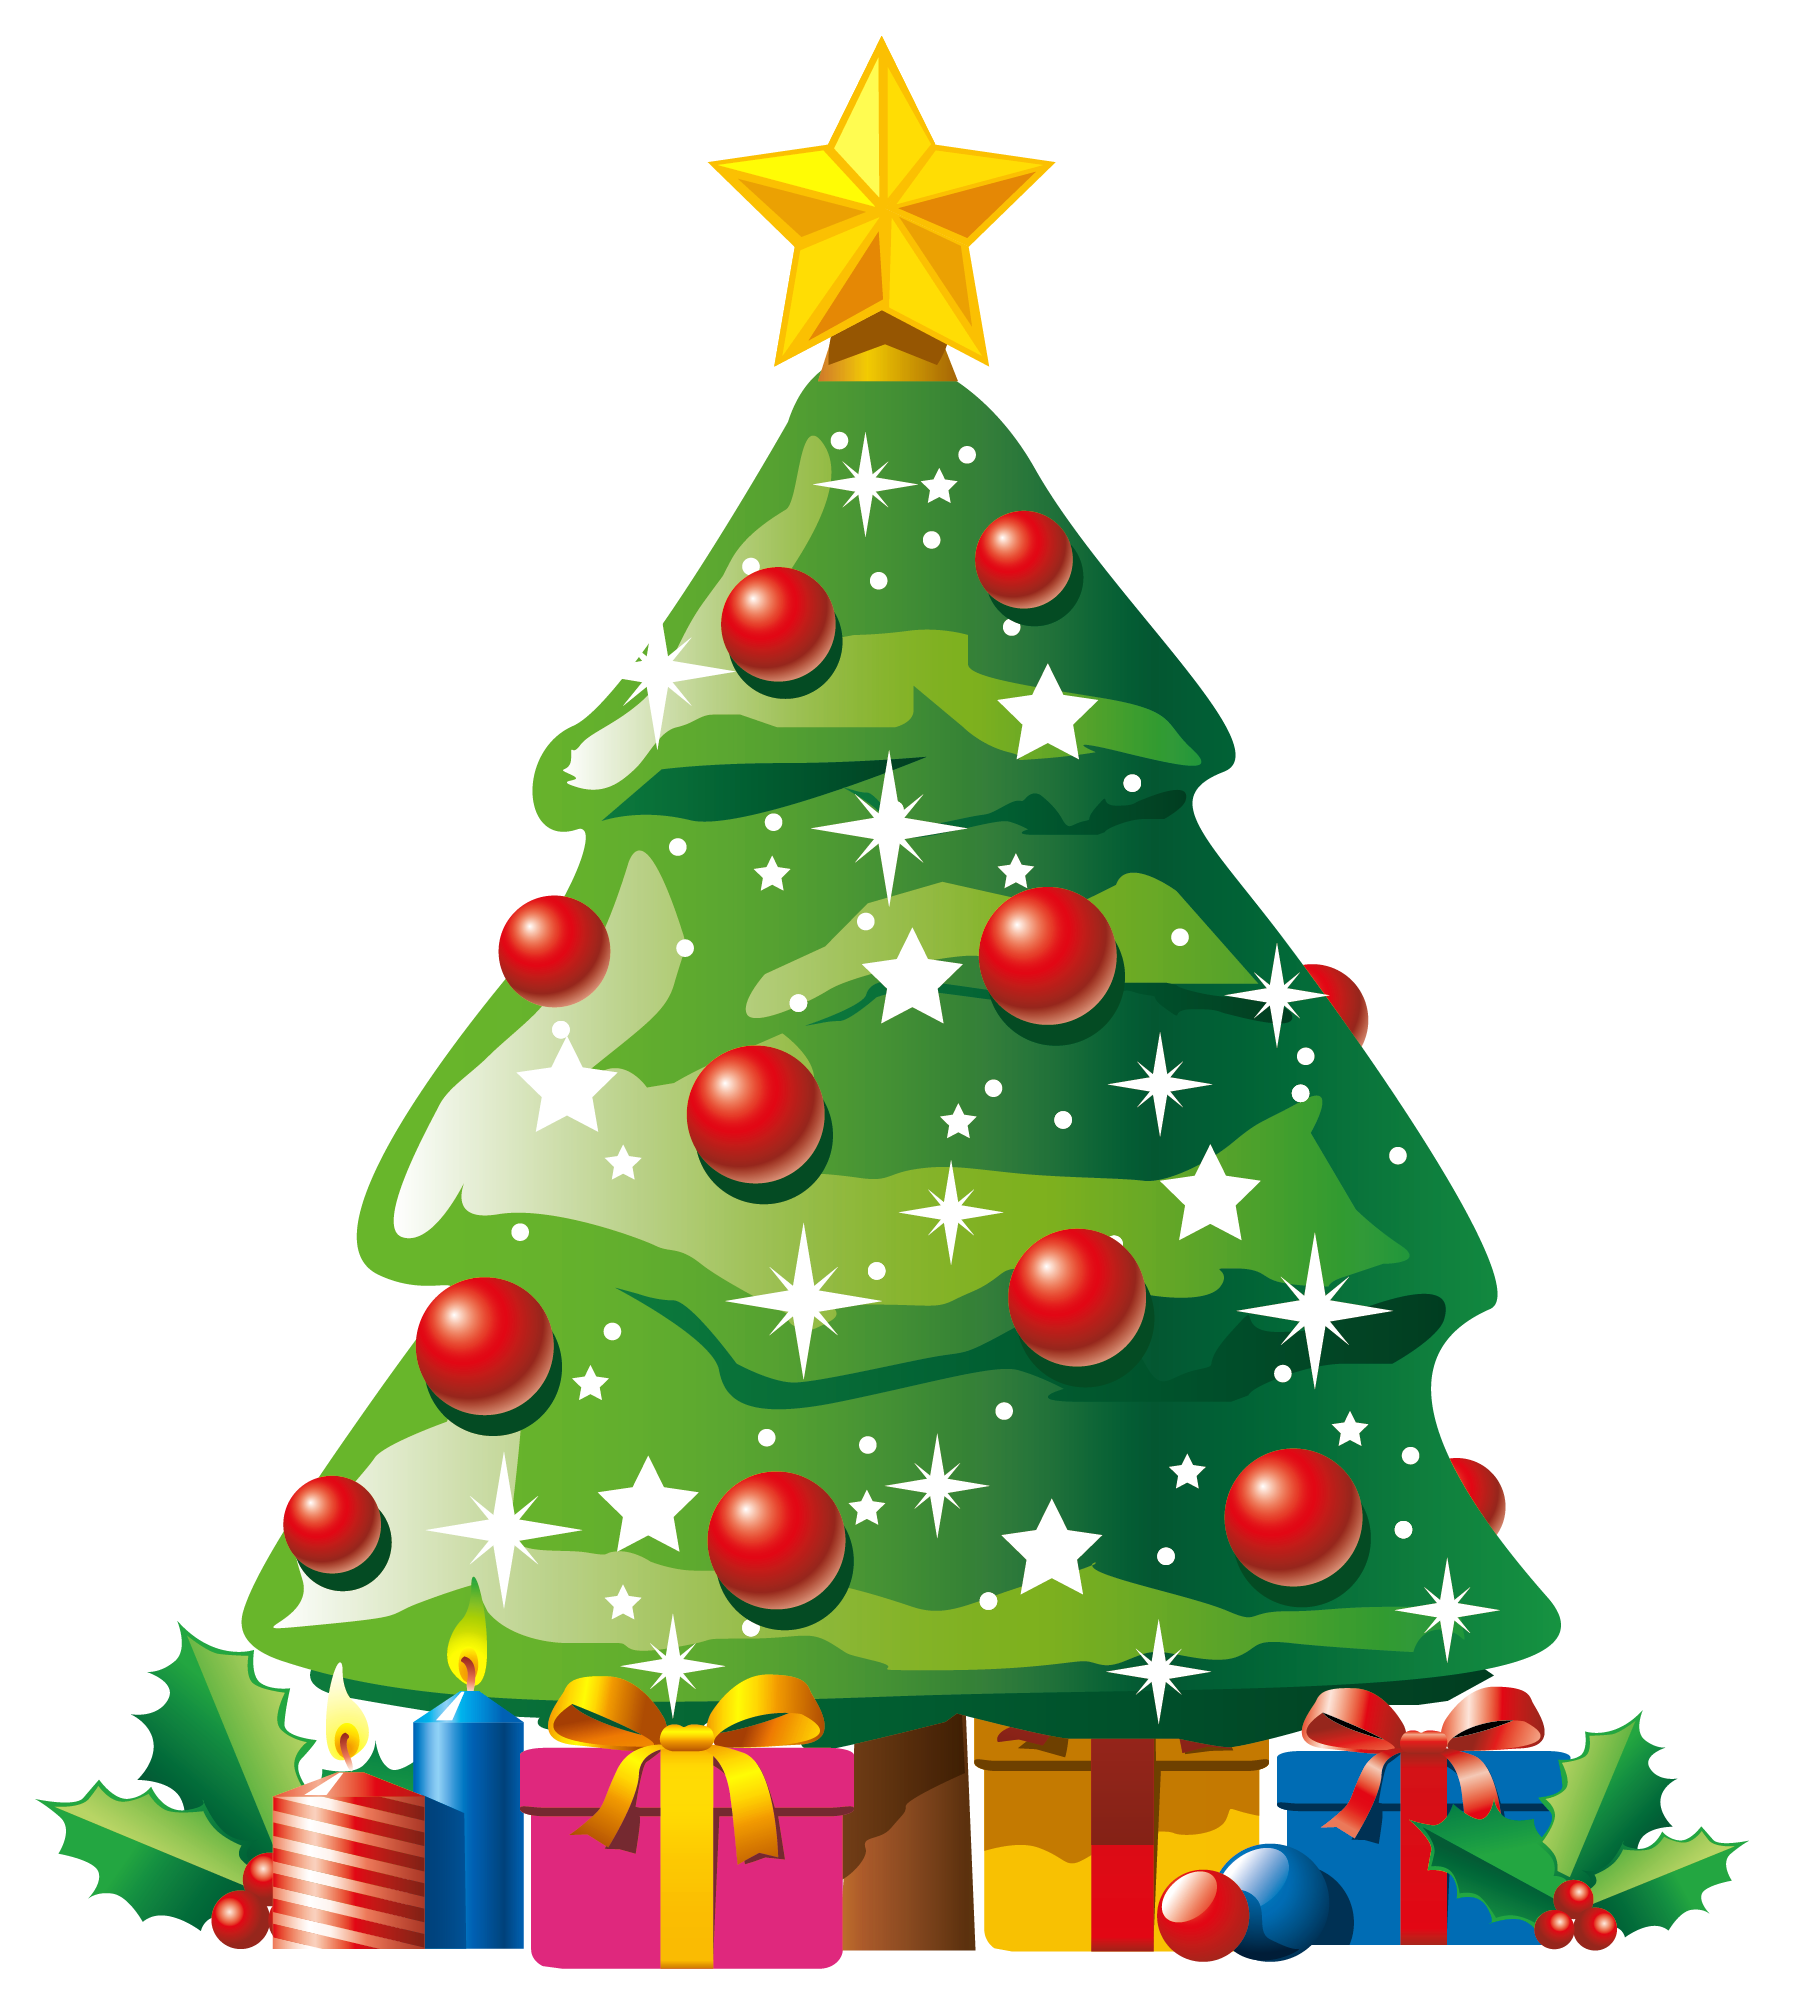 Clipart christmas tree images picture Free Christmas Tree Cliparts, Download Free Clip Art, Free Clip Art ... picture